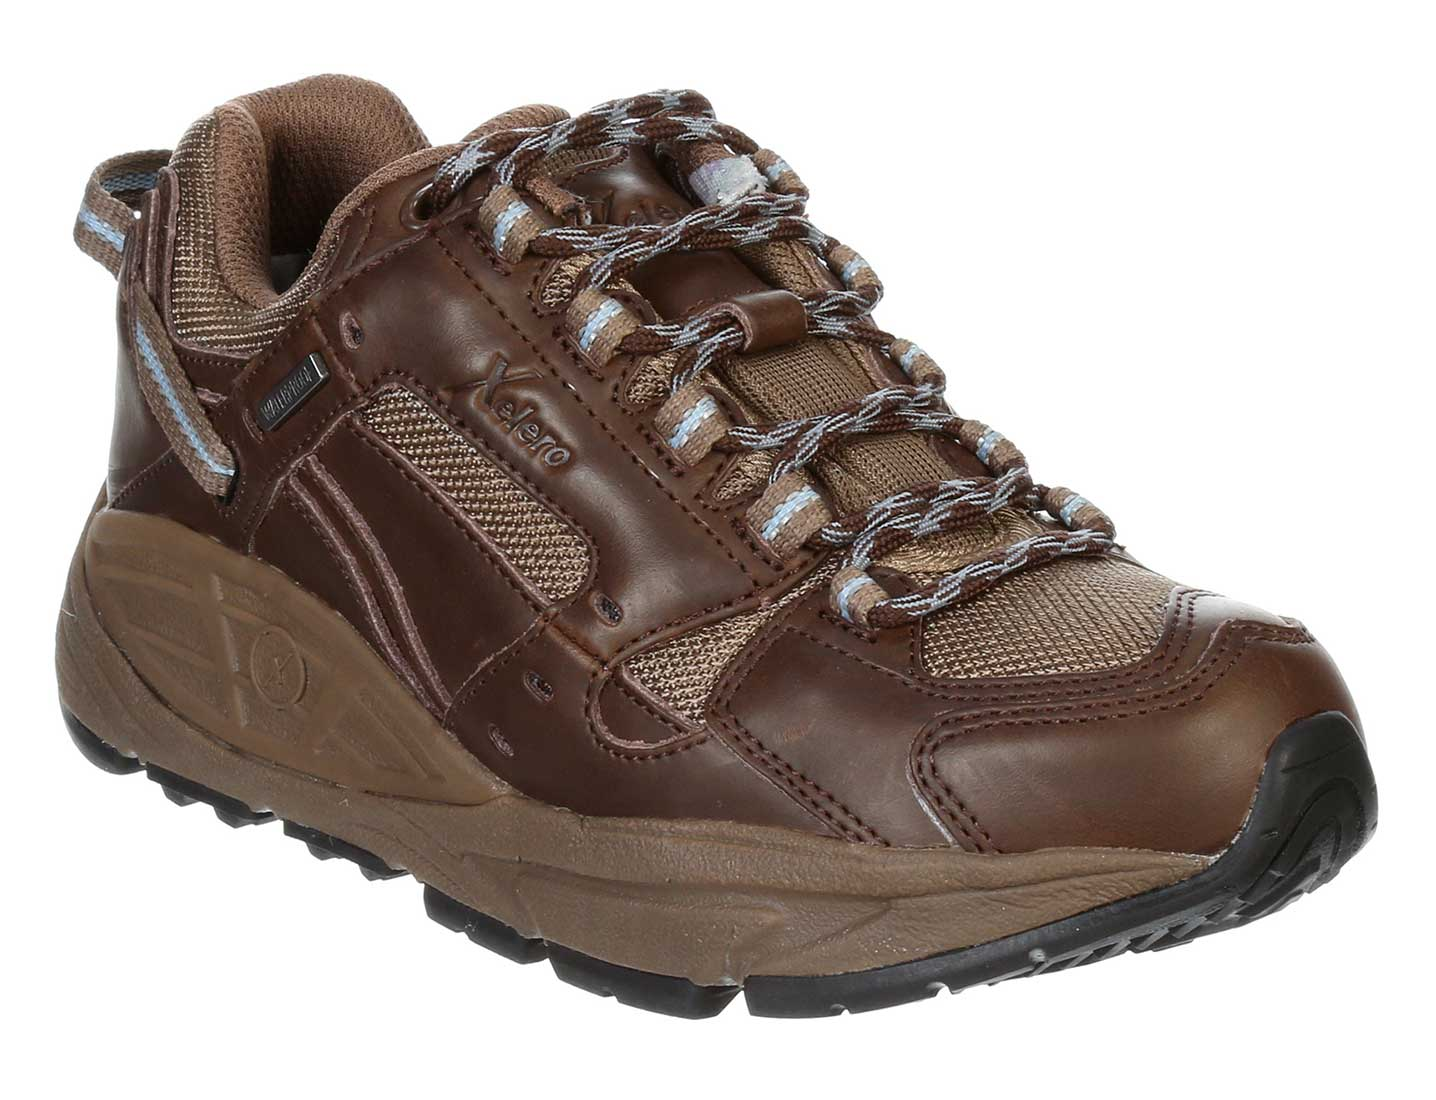 Xelero Shoes Summit X72545 - Women's Comfort Therapeutic Shoe - Outdoor Hiking Boot and Athletic Shoe - Medium (B) & Wide (D) - Extra Depth for Orthotics